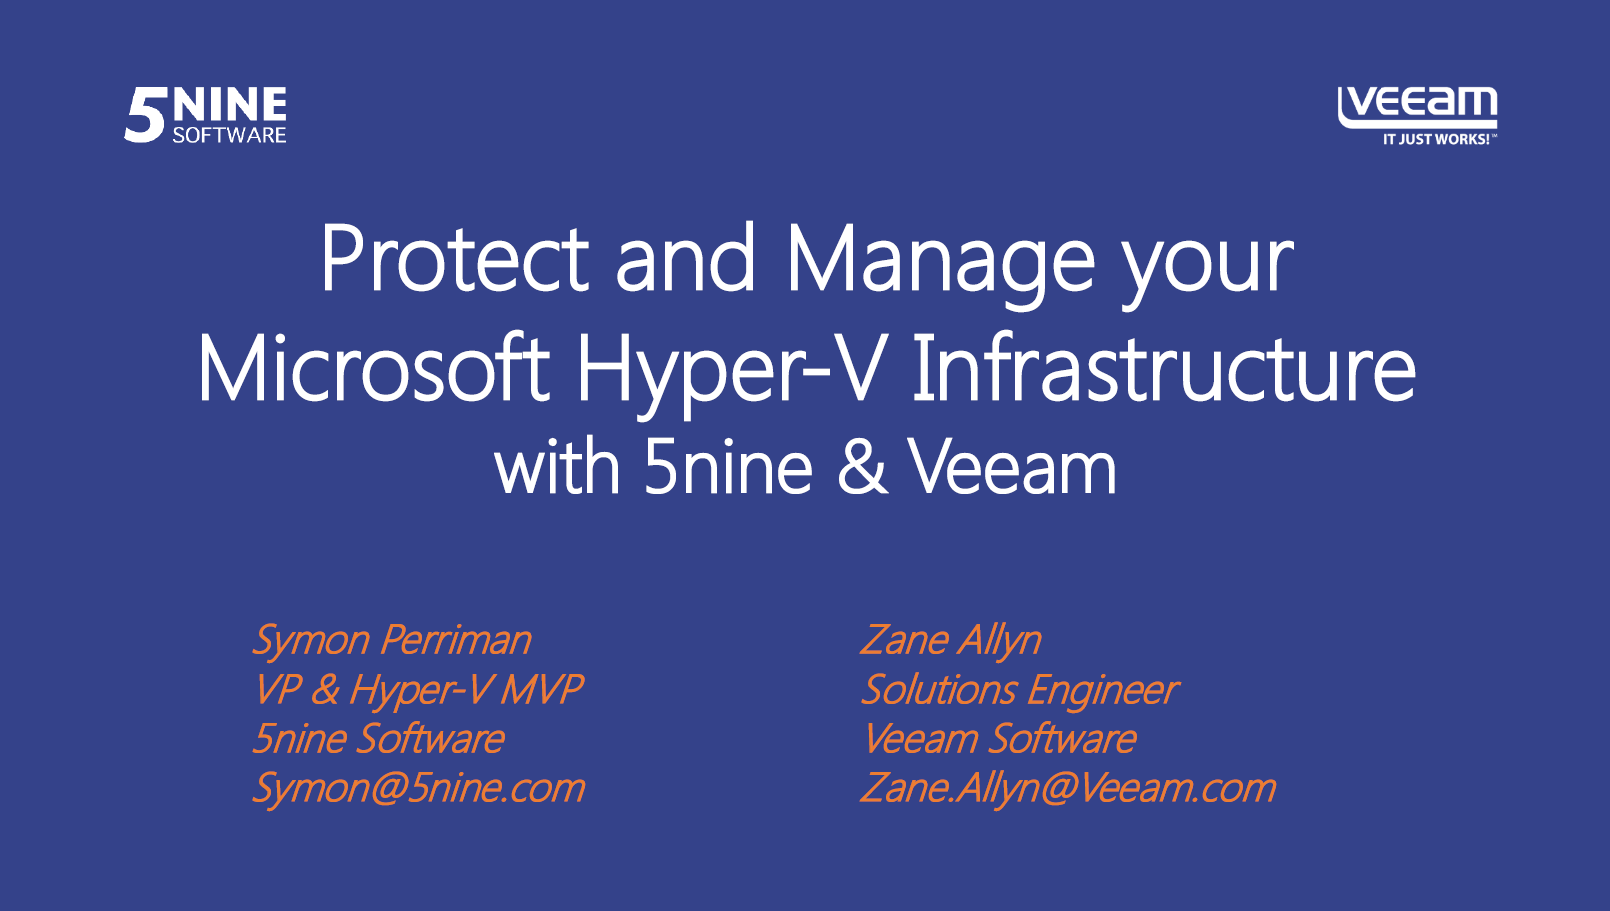 Protect and Manage your Microsoft Hyper-V Infrastructure with 5nine & Veeam